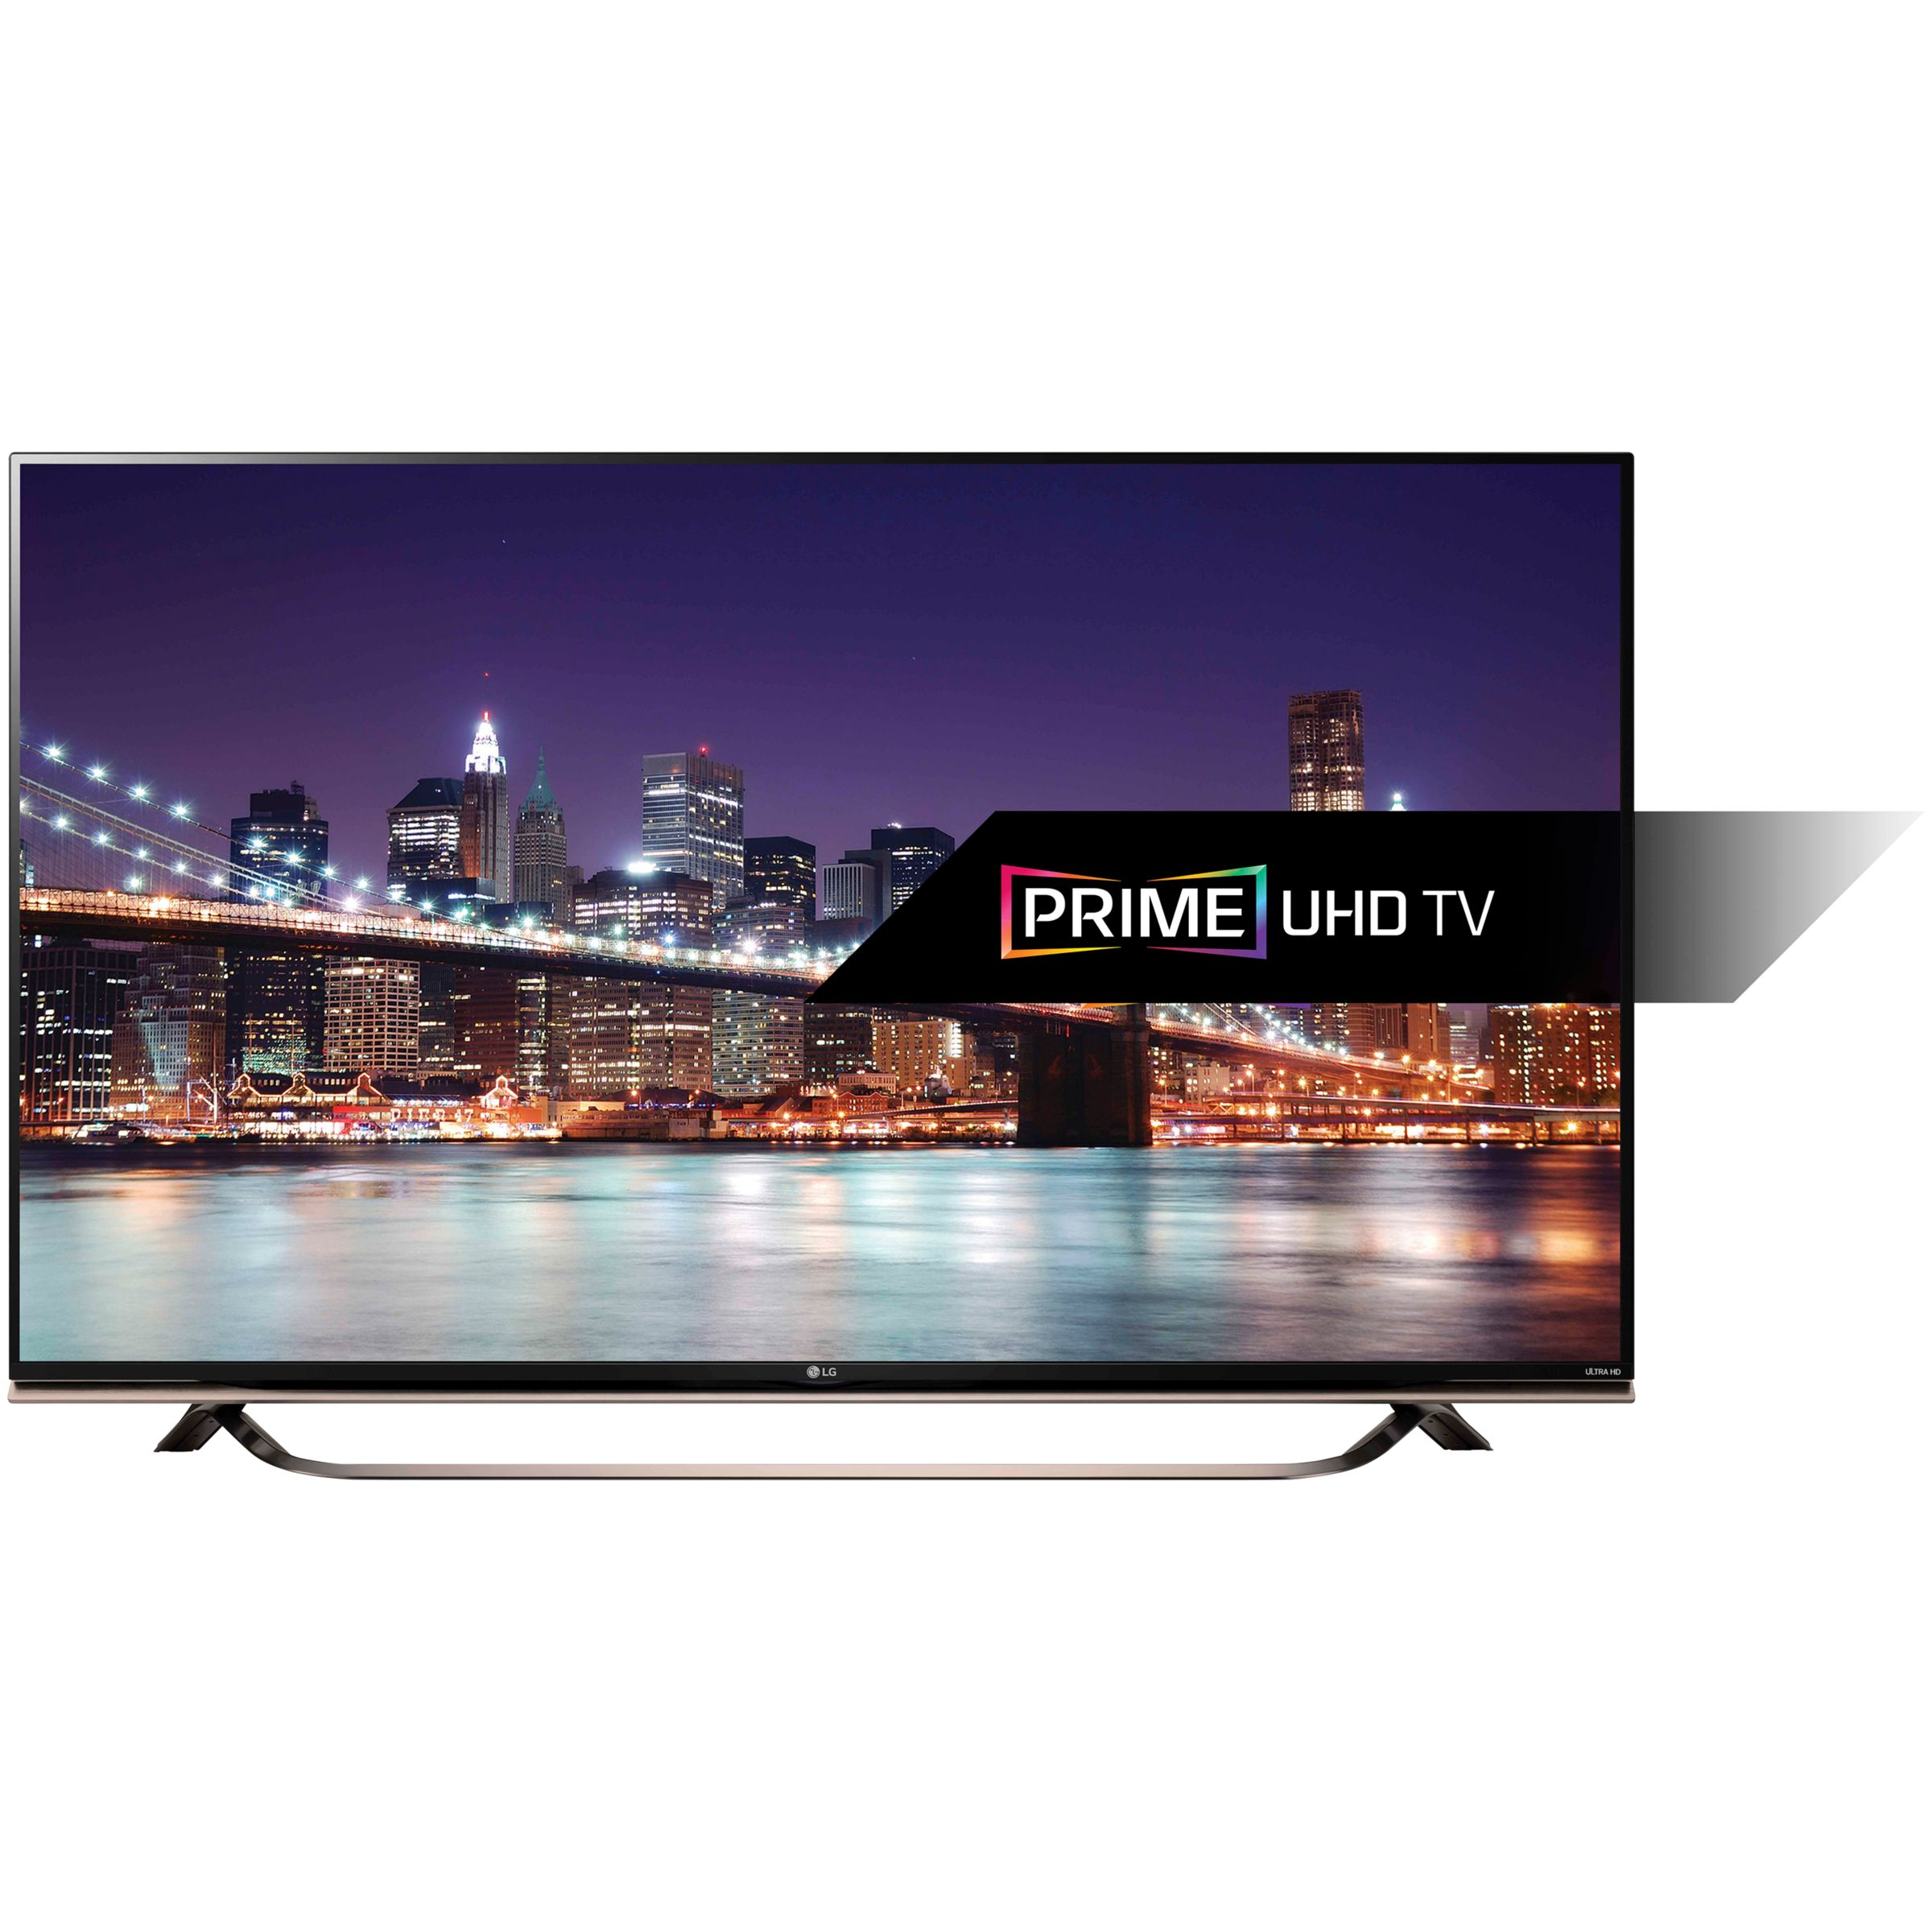 Lg 55uf860v 4k Ultra Hd 3d Smart Tv 55 With Freeview Built In W123 Instrument Cluster Printed Circuit Board Repairpaste2hgdiy Wi Fi Harman Kardon Audio 2x Glasses At John Lewis Partners